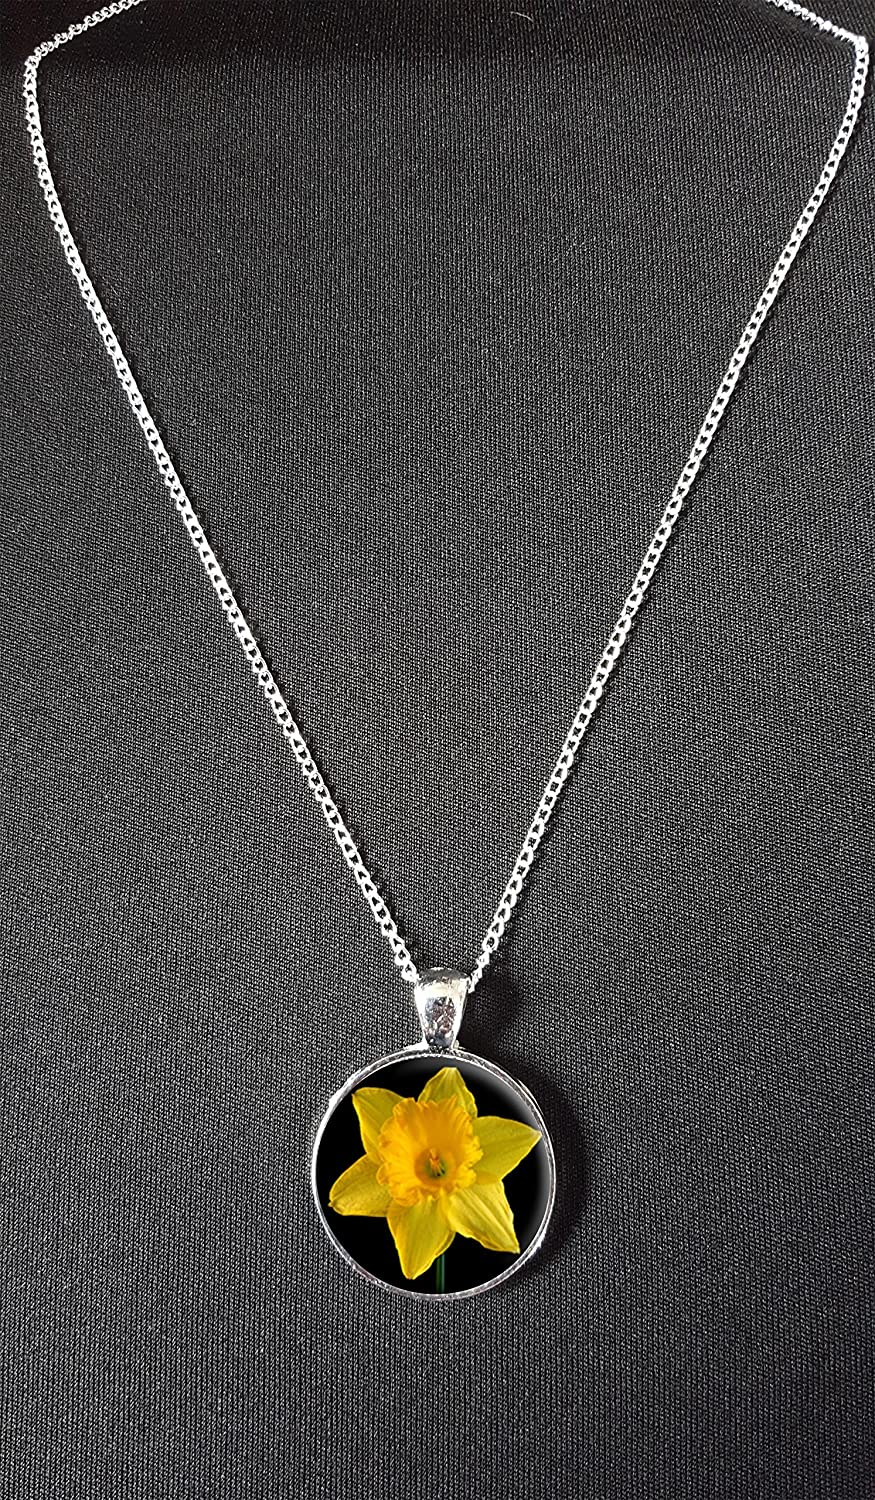 Daffodil Pendant On 18 Silver Plated Fine Metal Chain Necklace Ideal Birthday Gift N582